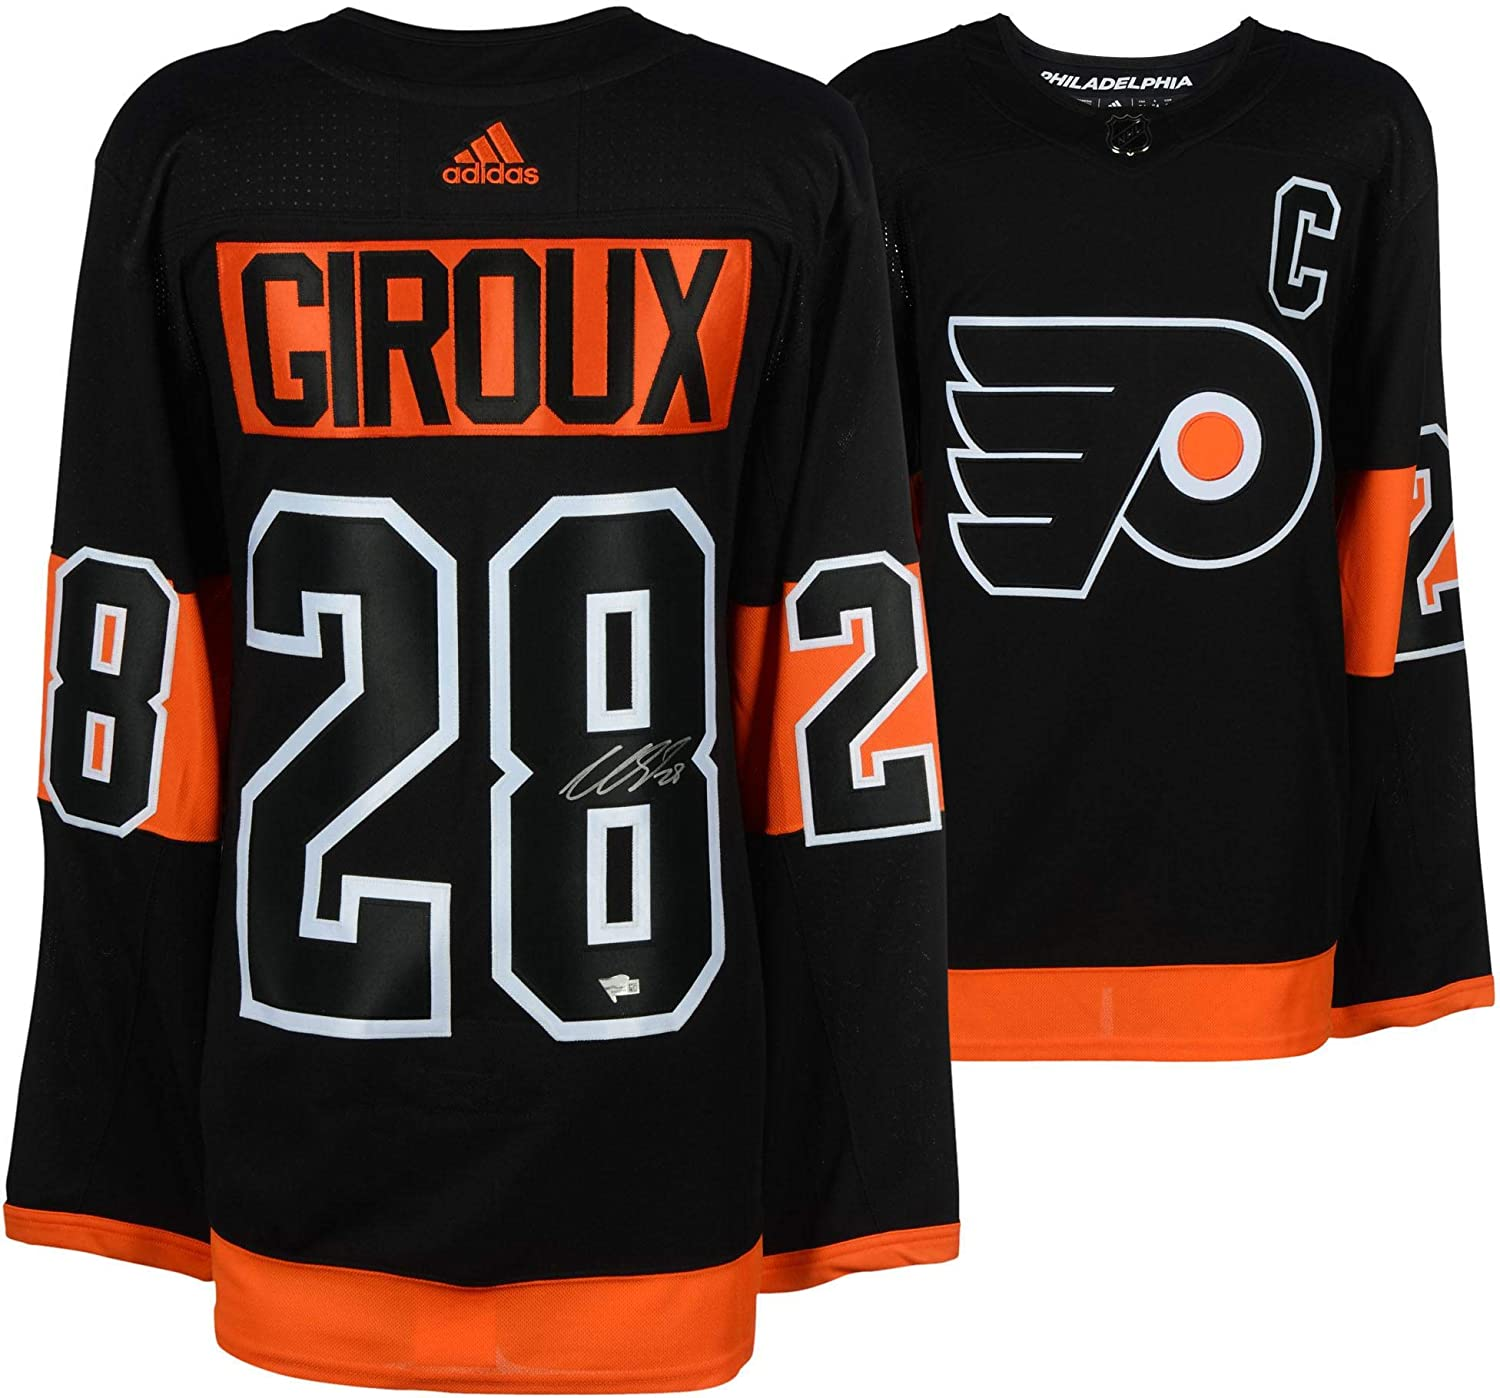 ab71b533c Claude Giroux Philadelphia Flyers Autographed Black Alternate Adidas  Authentic Jersey - Fanatics Authentic Certified at Amazon s Sports  Collectibles Store